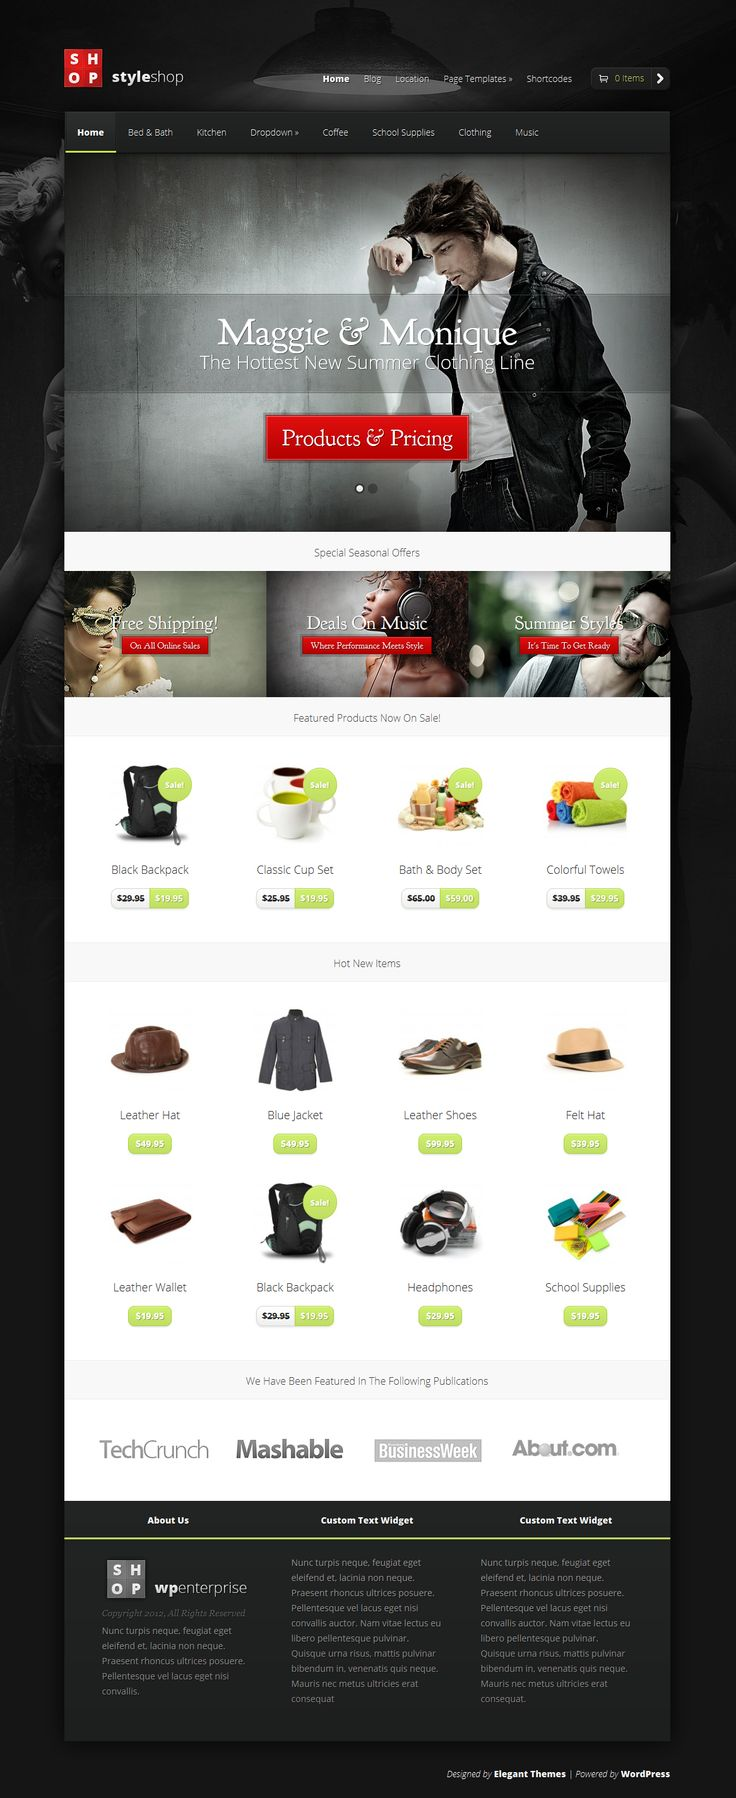 Designed by elegant themes powered by wordpress - Elegantthemes Styleshop Is A Responsive Wordpress Theme For Online Shops Powered By The Woocommerce Engine Featuring Homepage Sections For New And On Sale